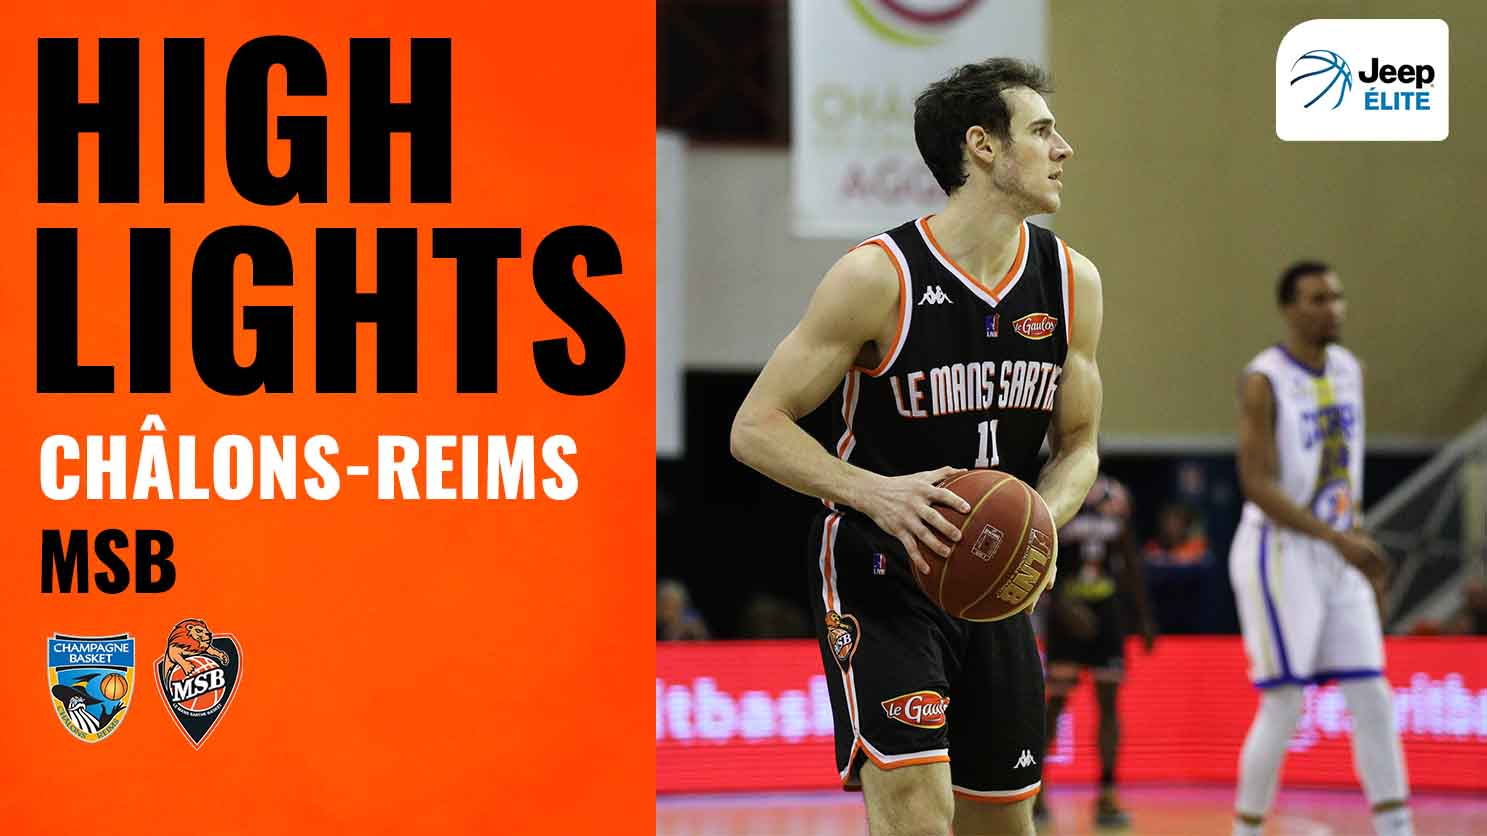 Châlons-Reims - MSB | Highlights